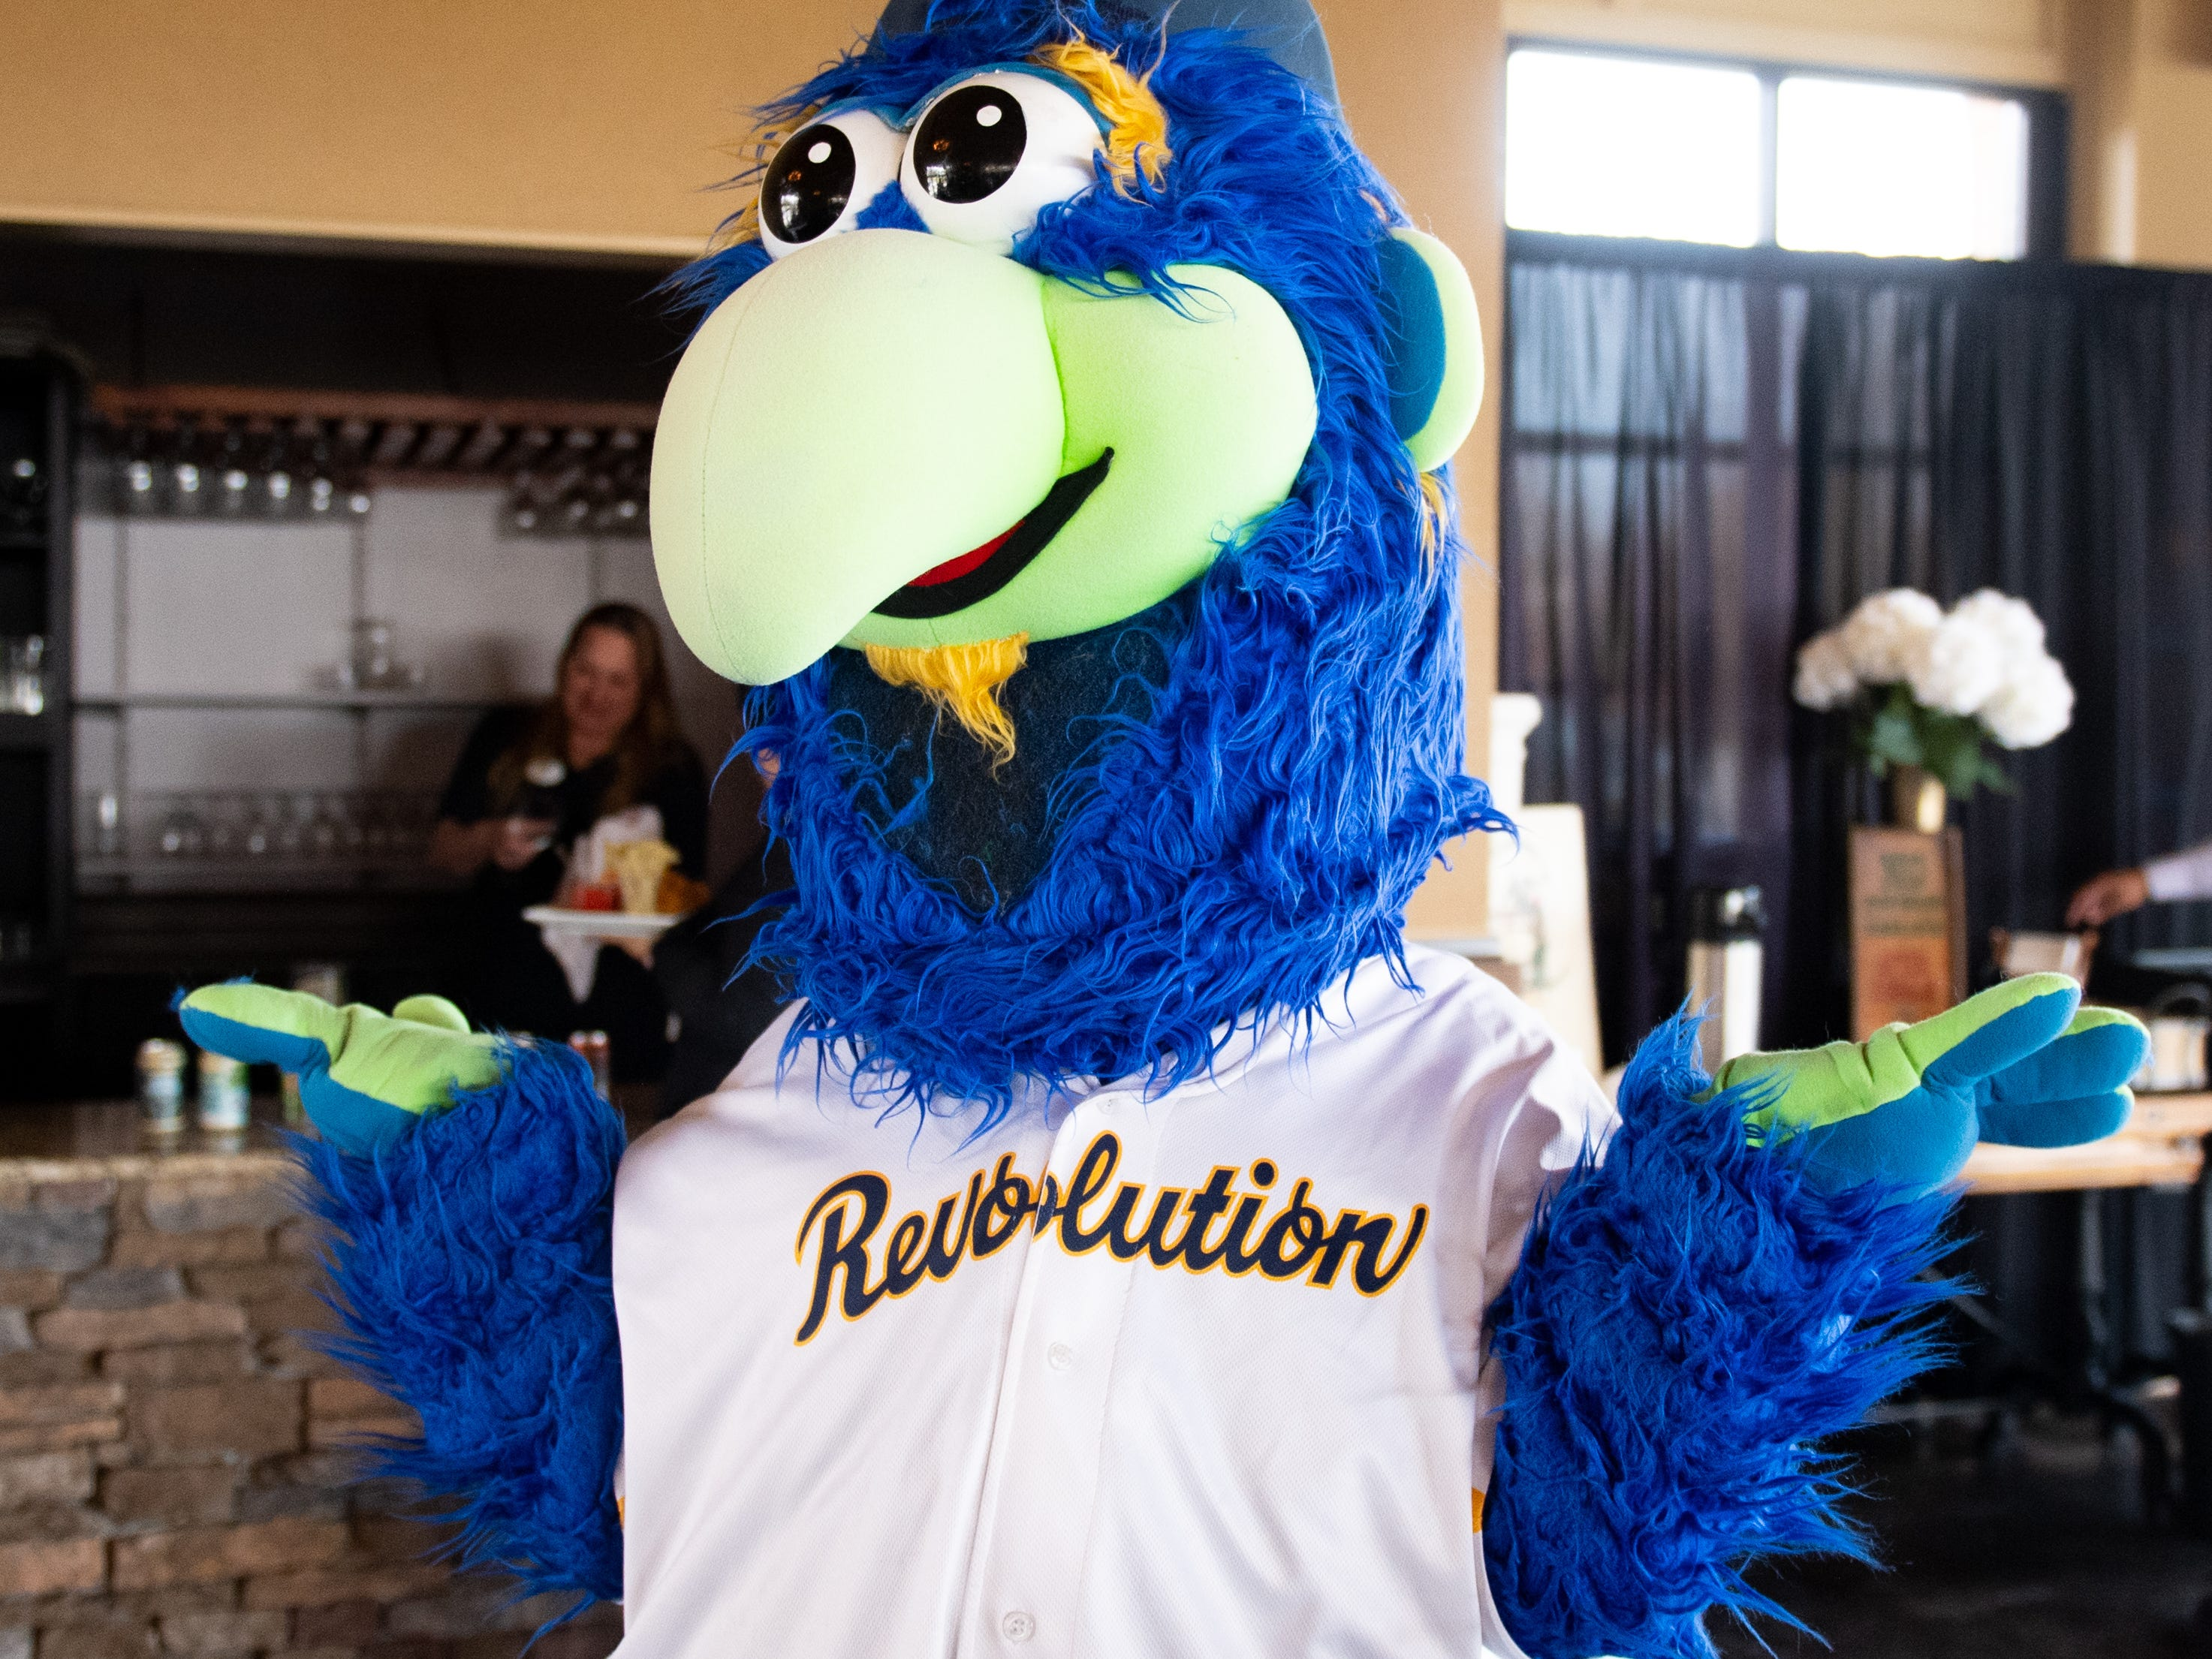 York Revolution's DownTown greets fans during the 55th Annual York Area Sports Night, April 4, 2019.